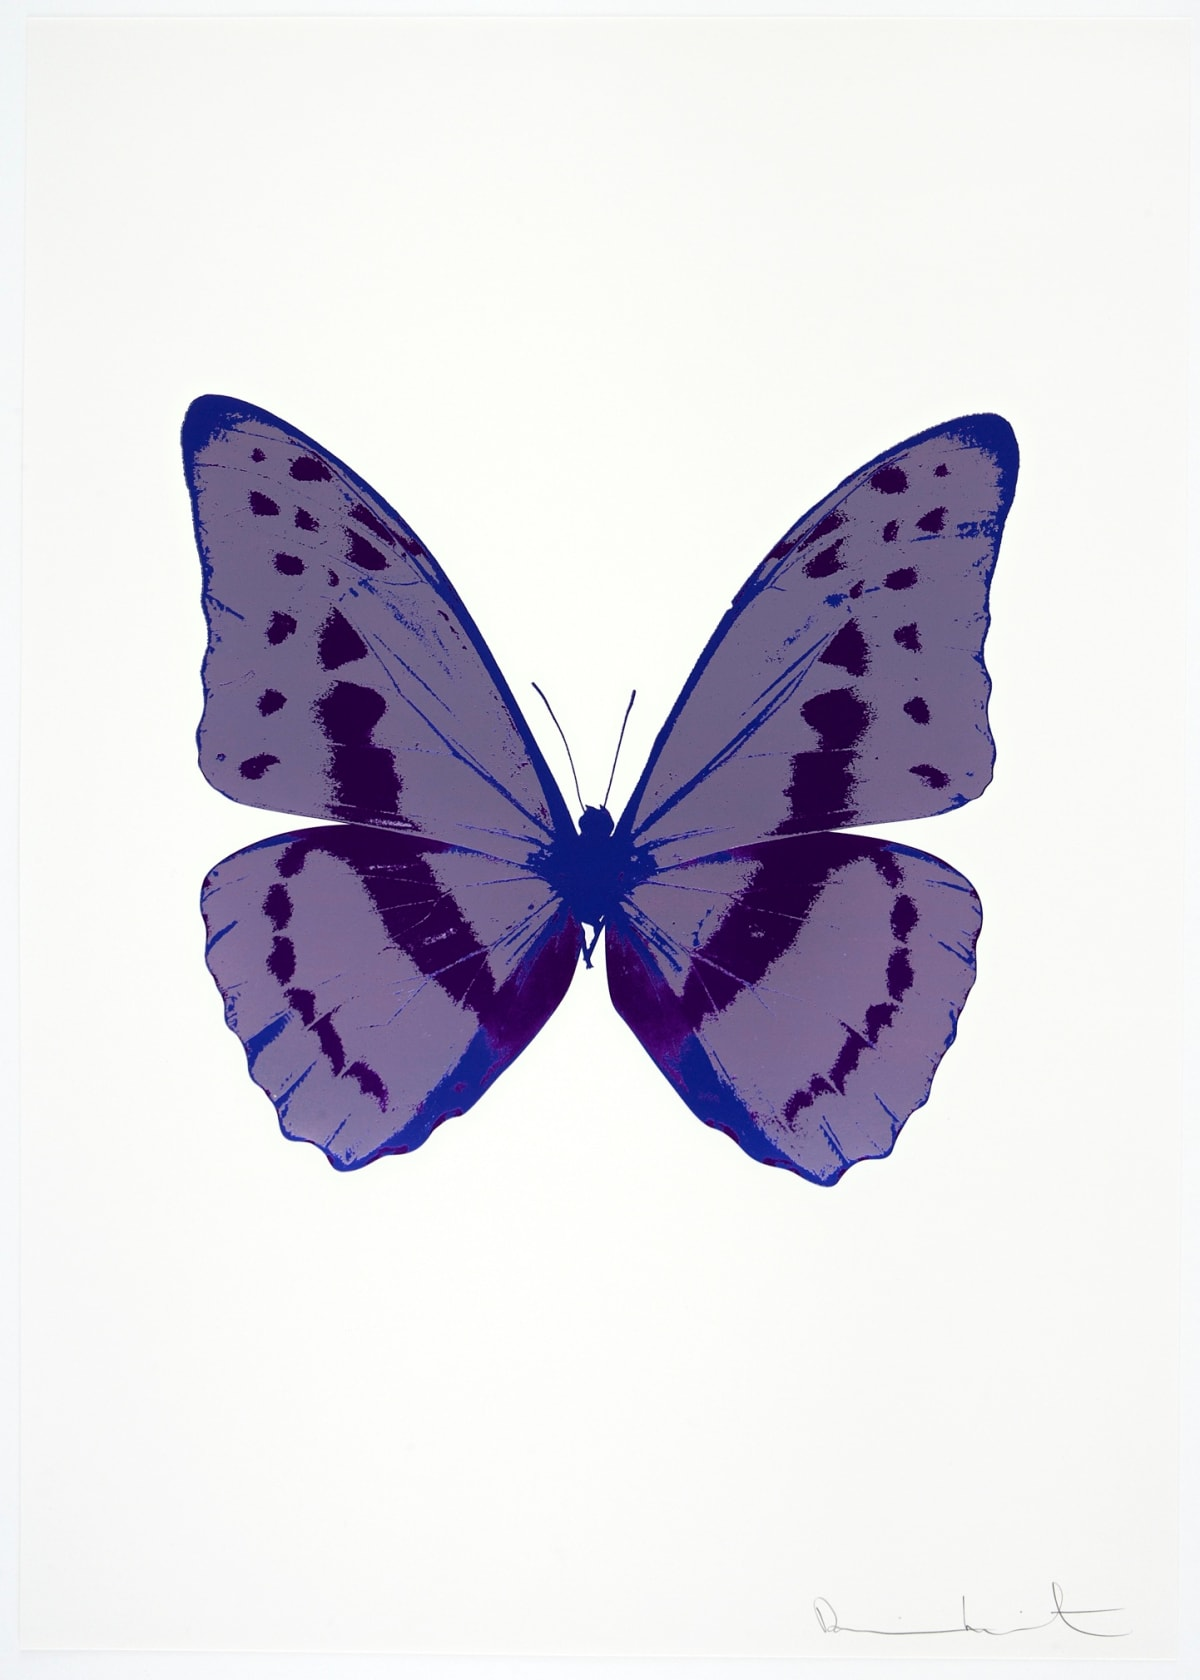 Damien Hirst The Souls III - Aquarius/Imperial Purple/Westminster Blue, 2010 3 colour foil block on 300gsm Arches 88 archival paper. Signed and numbered. Published by Paul Stolper and Other Criteria 72 x 51cm OC7918 / 660-21 Edition of 15